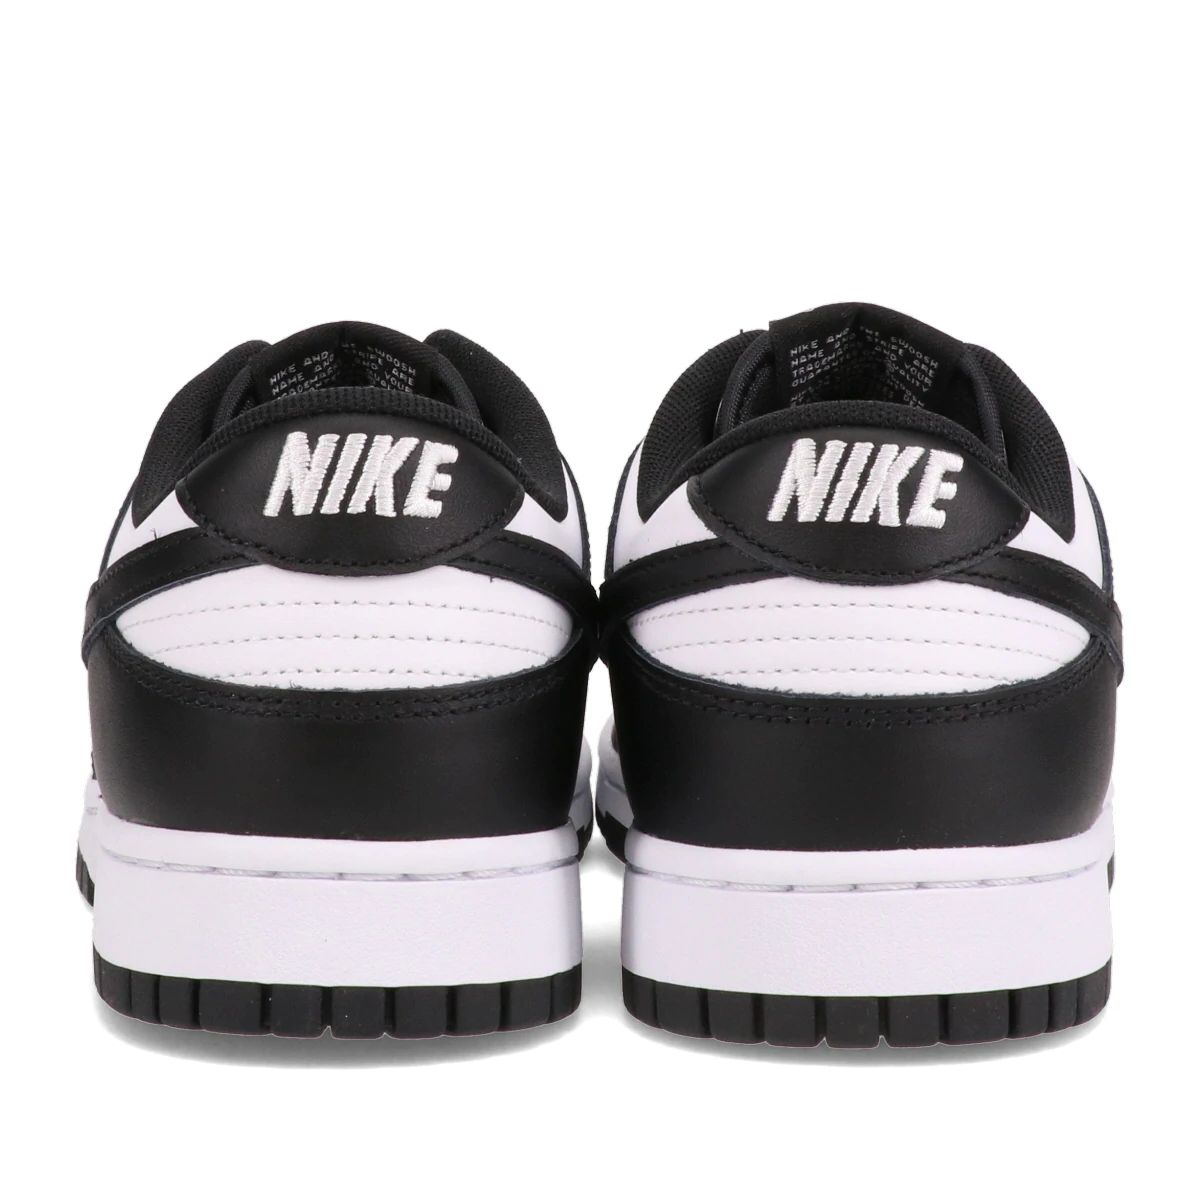 nike-dunk-low-black-white-dd1391-100-release-20210107